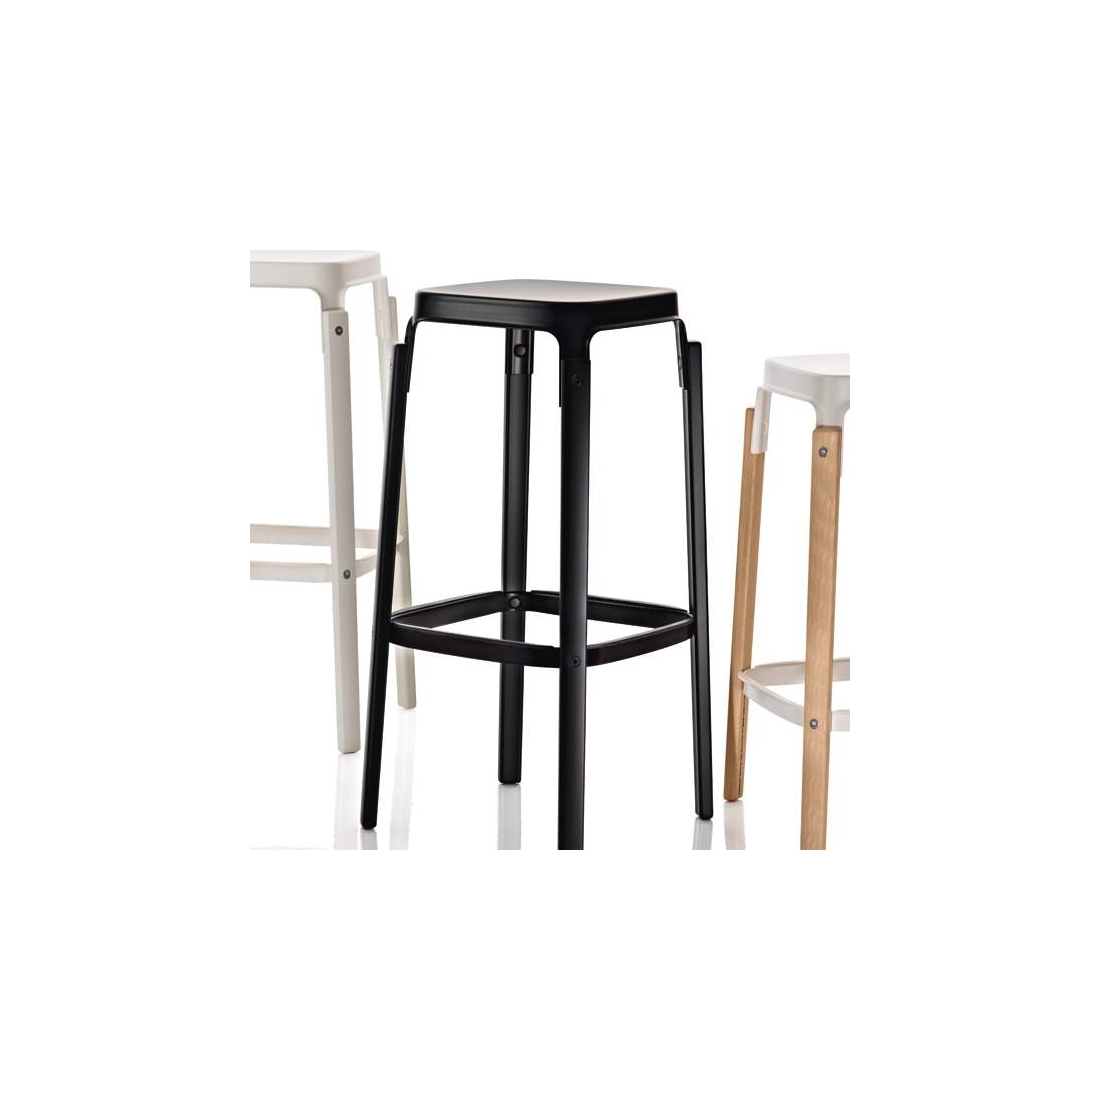 tabouret haut magis steelwood tabourets design magis. Black Bedroom Furniture Sets. Home Design Ideas